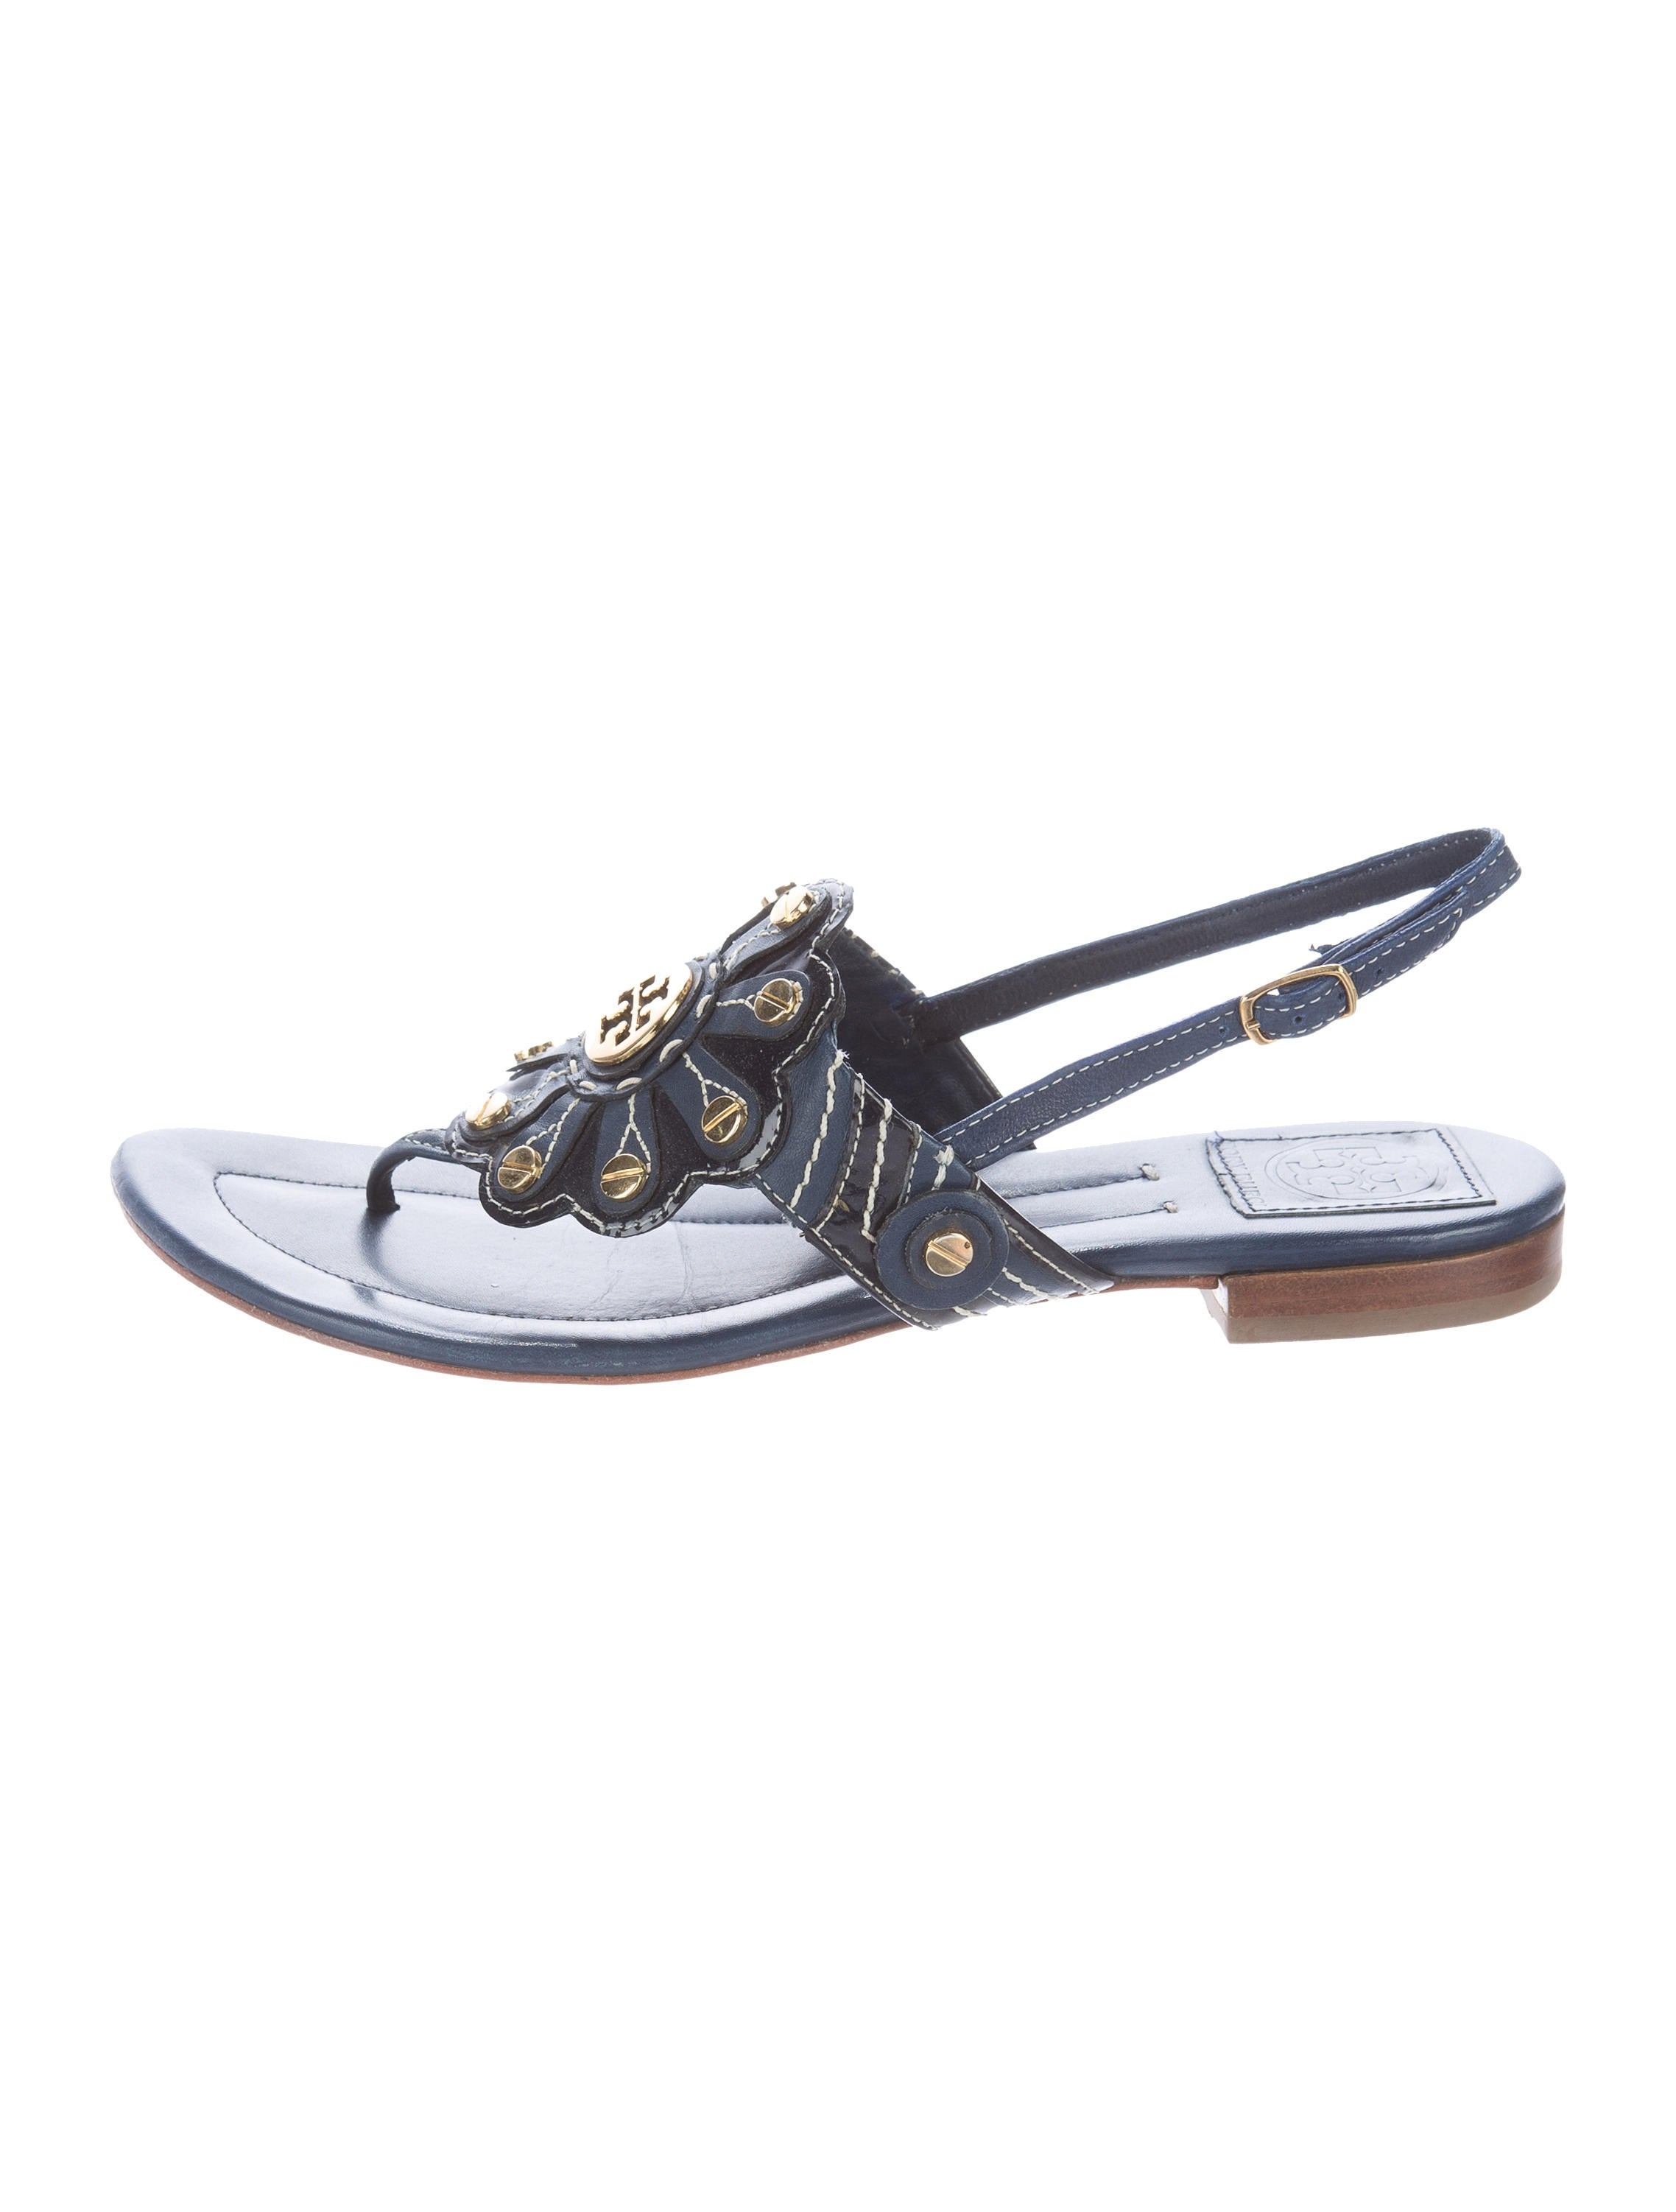 2e6186b423e39d Tory Burch Roma Logo-Embellished Sandals - Shoes - WTO93404